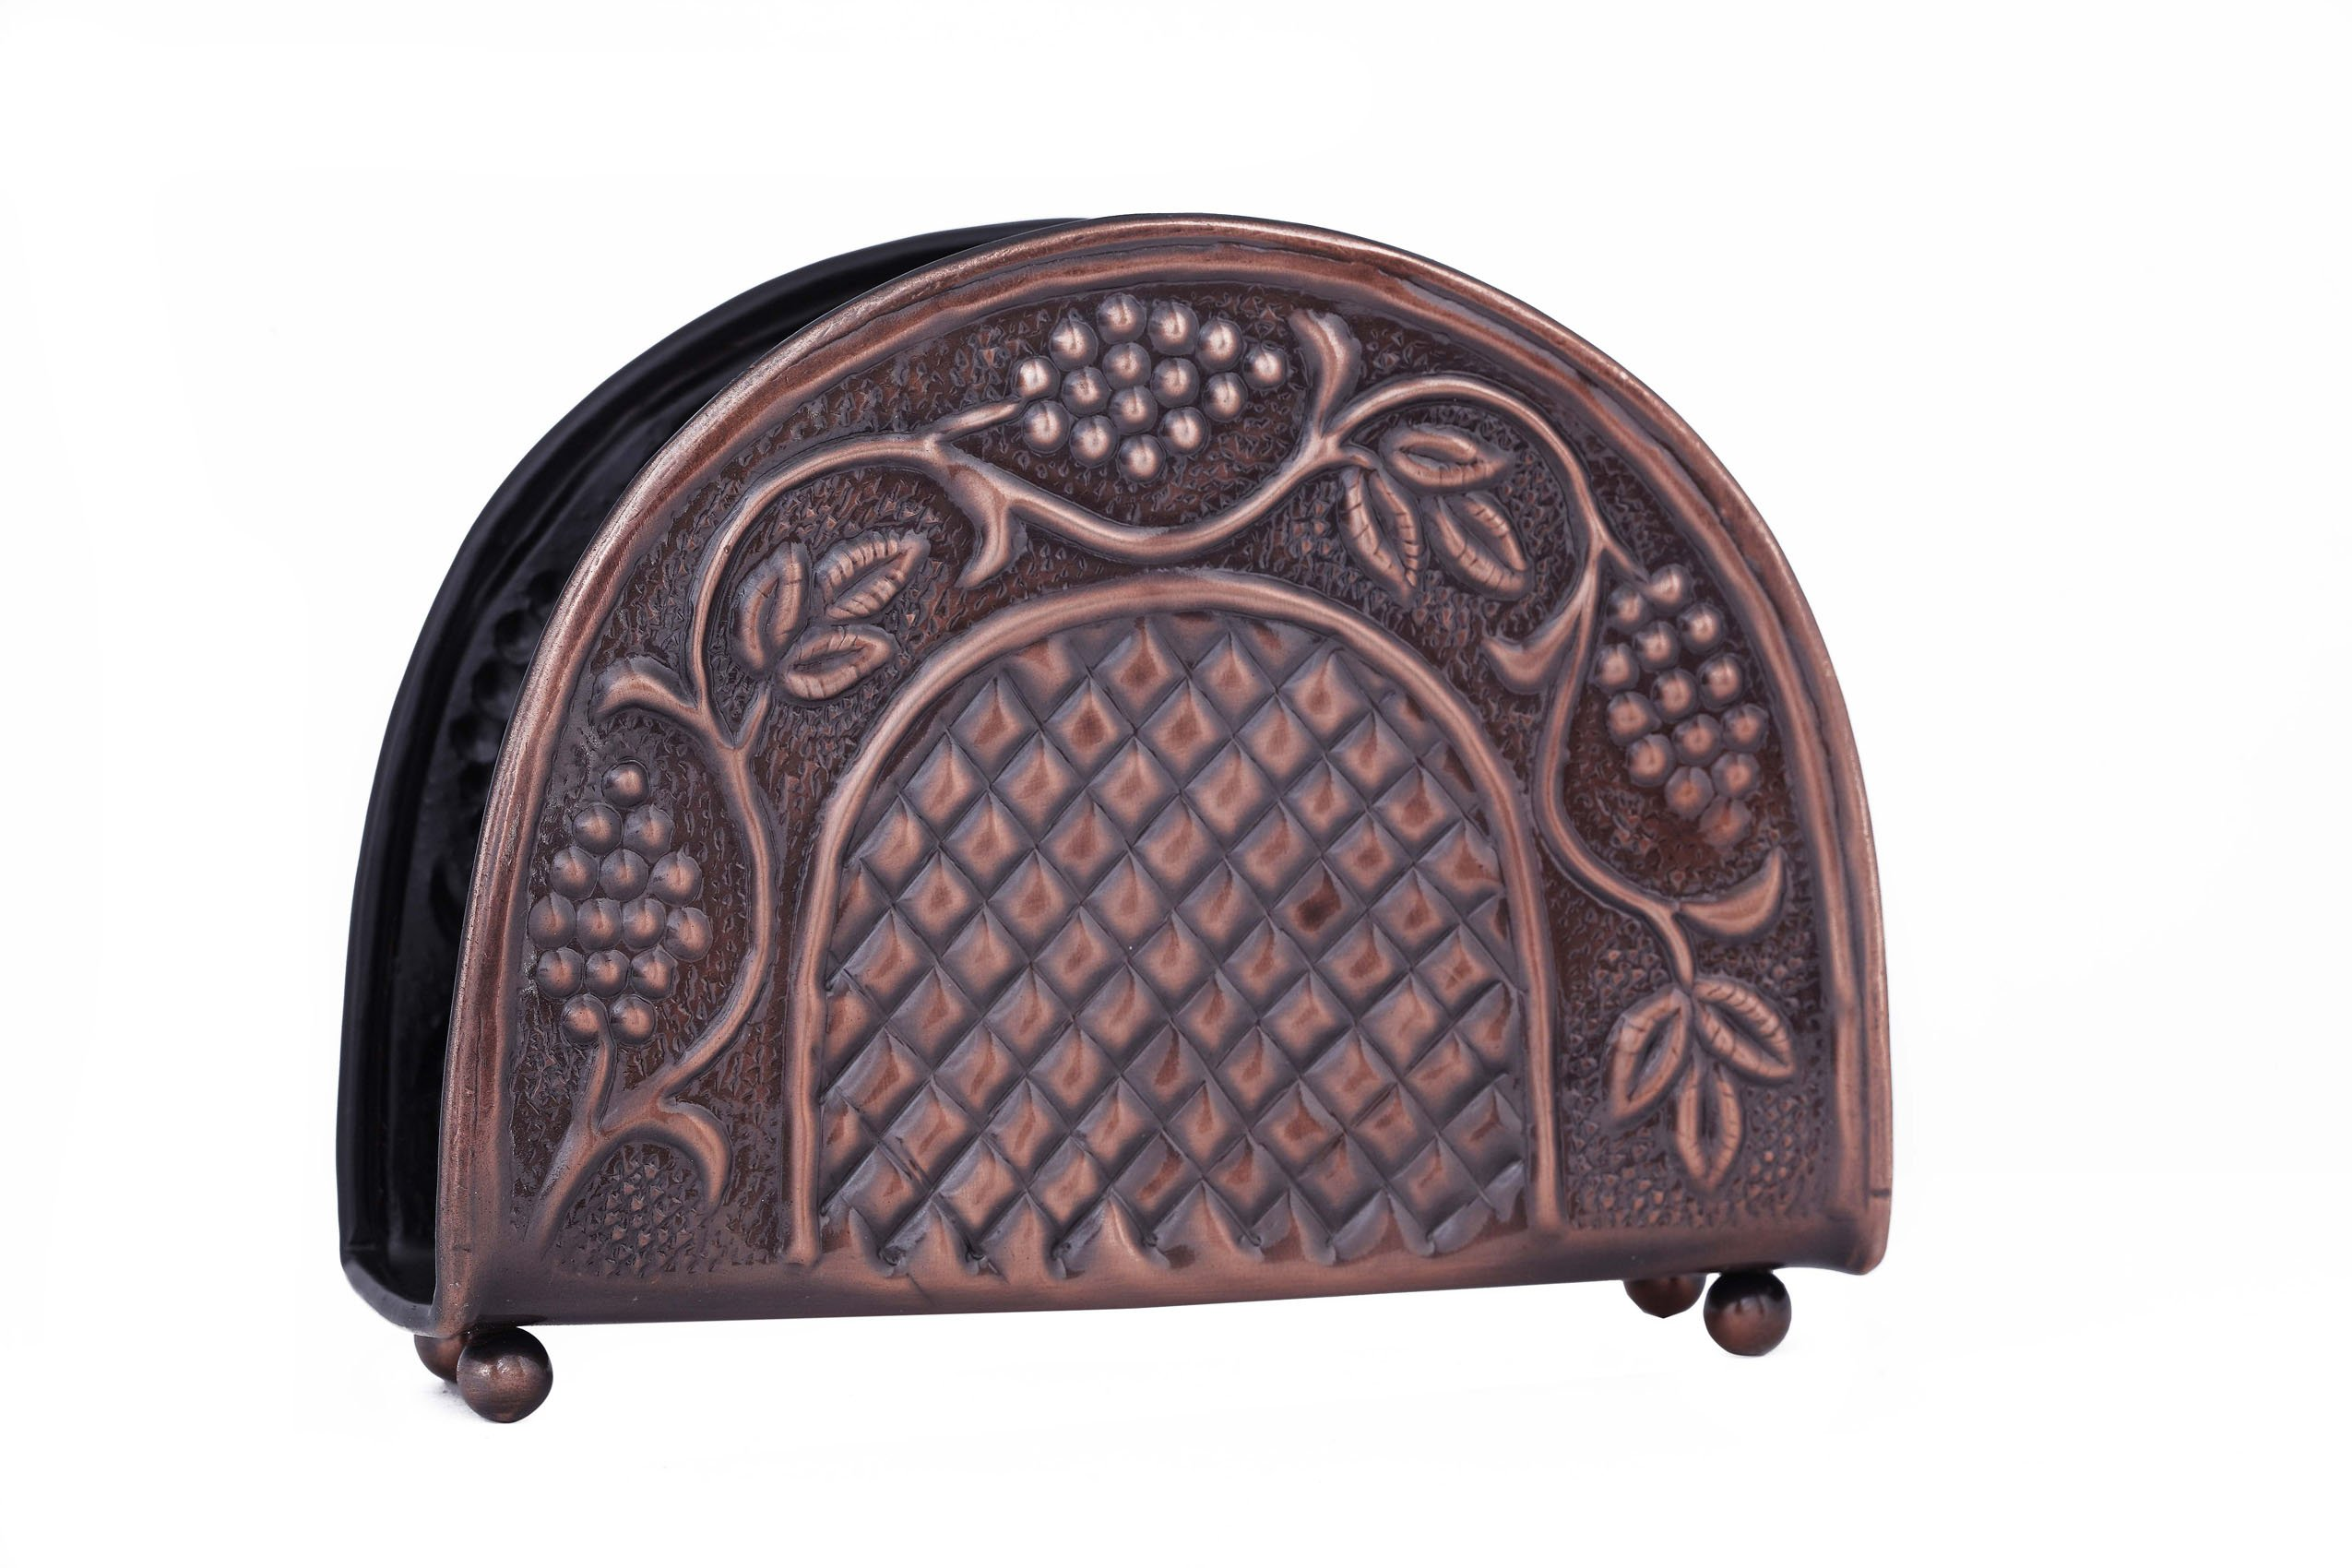 Old Dutch Antique Embossed Heritage Napkin Holder, 7-1/4 by 2 by 5-1/2-Inch by Old Dutch